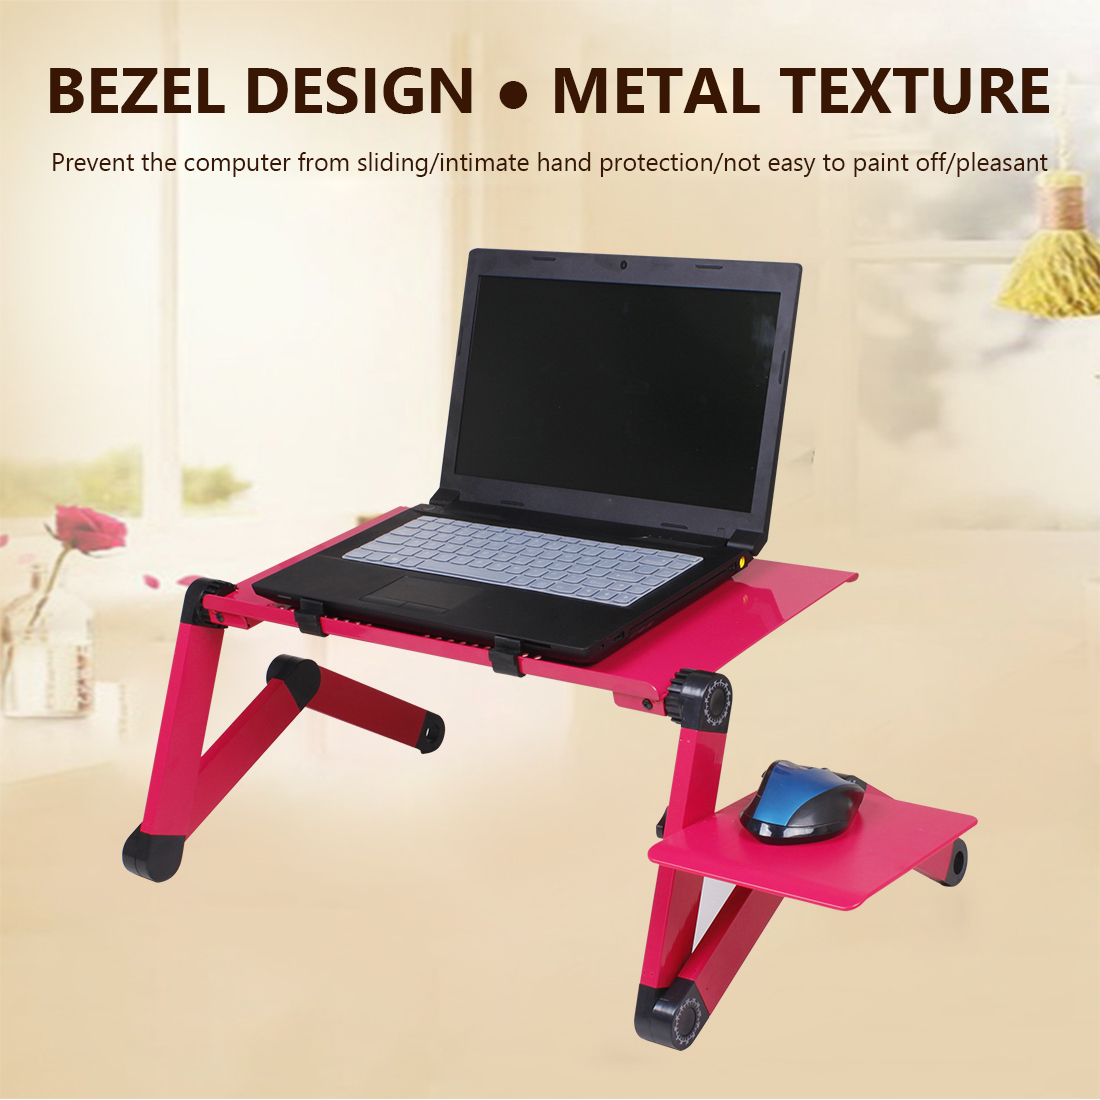 Adjustable Aluminum Laptop Desk  Ergonomic Portable TV Bed For Ultrabook Or Laptop Computer Table With Mouse Pad Notebook